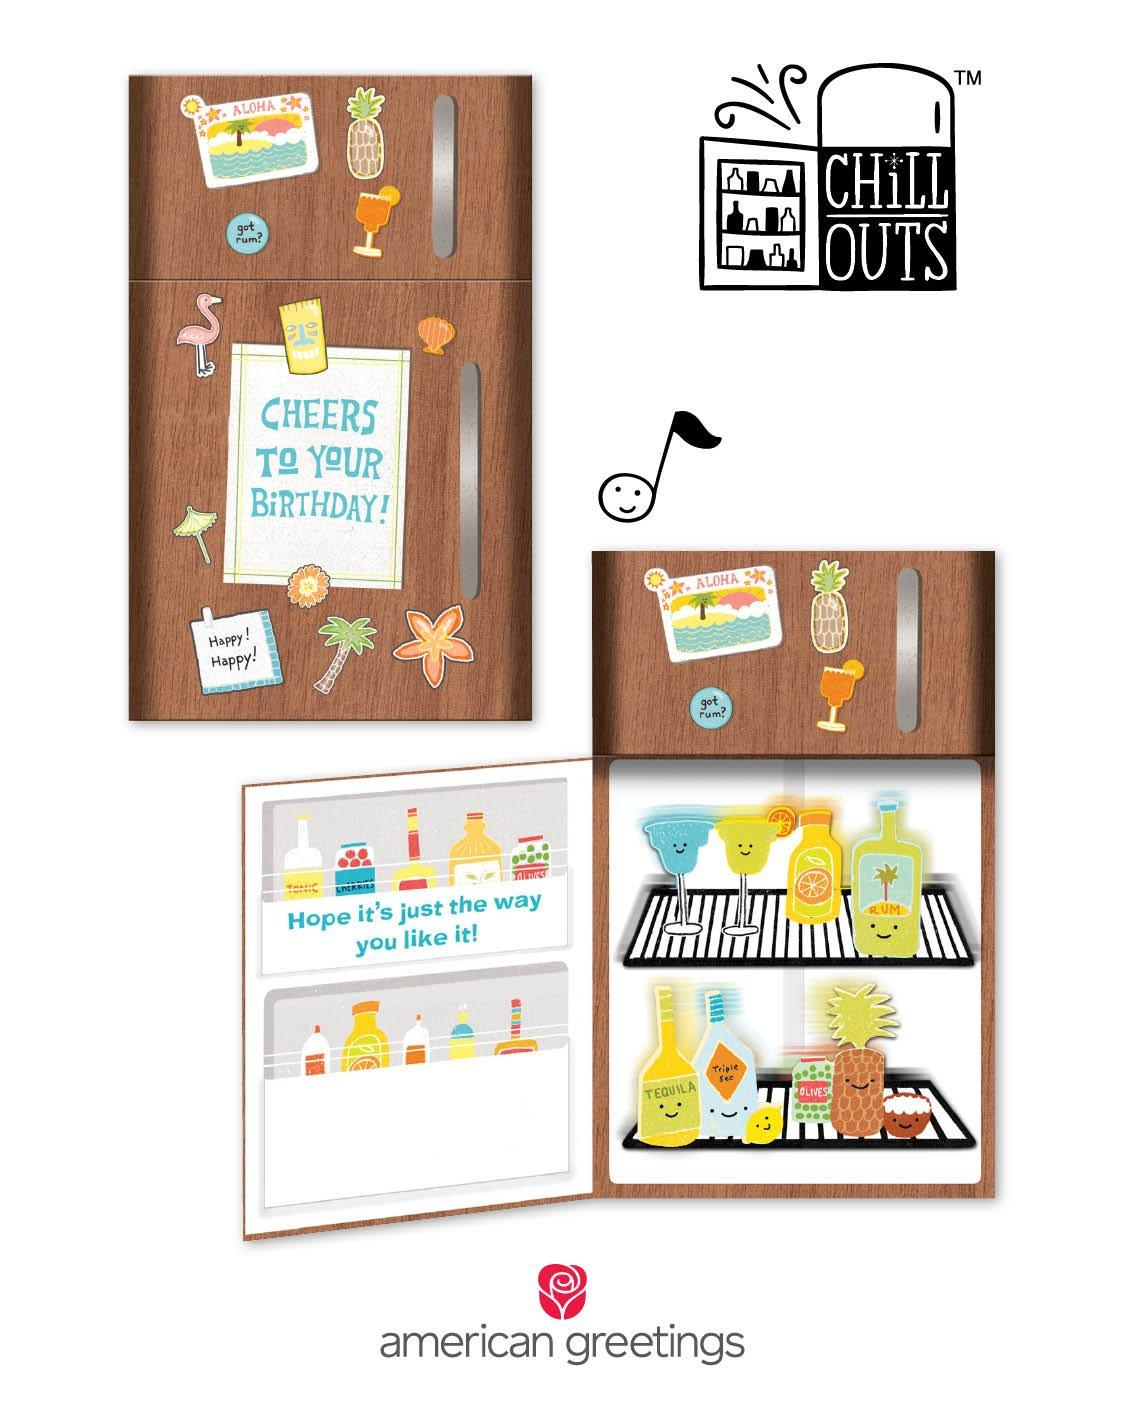 Make birthdays extra cool with new chill outstm cards from make birthdays extra cool with new chill outstm cards from american greetings m4hsunfo Choice Image